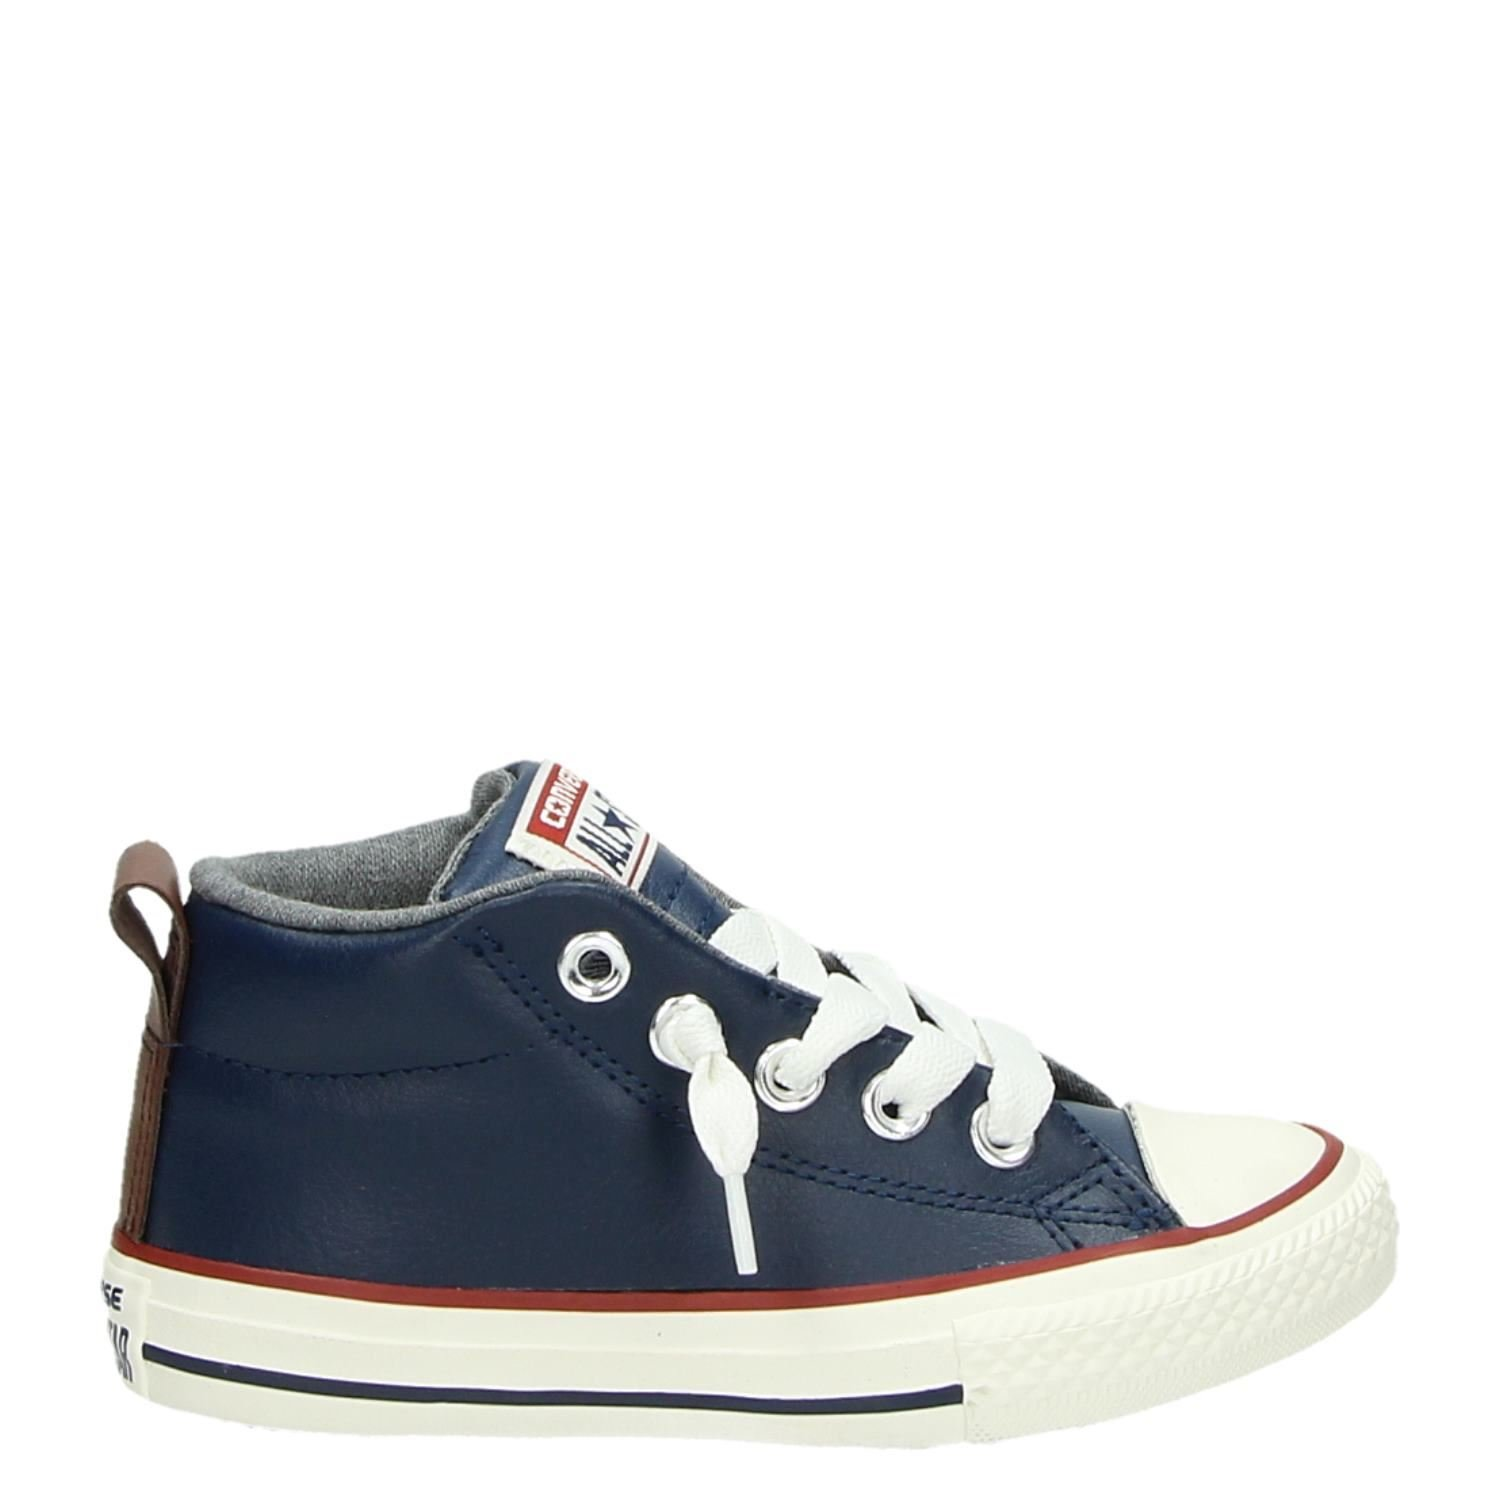 d0d6b4f6166 Converse All Star Street Winter jongens lage sneakers blauw